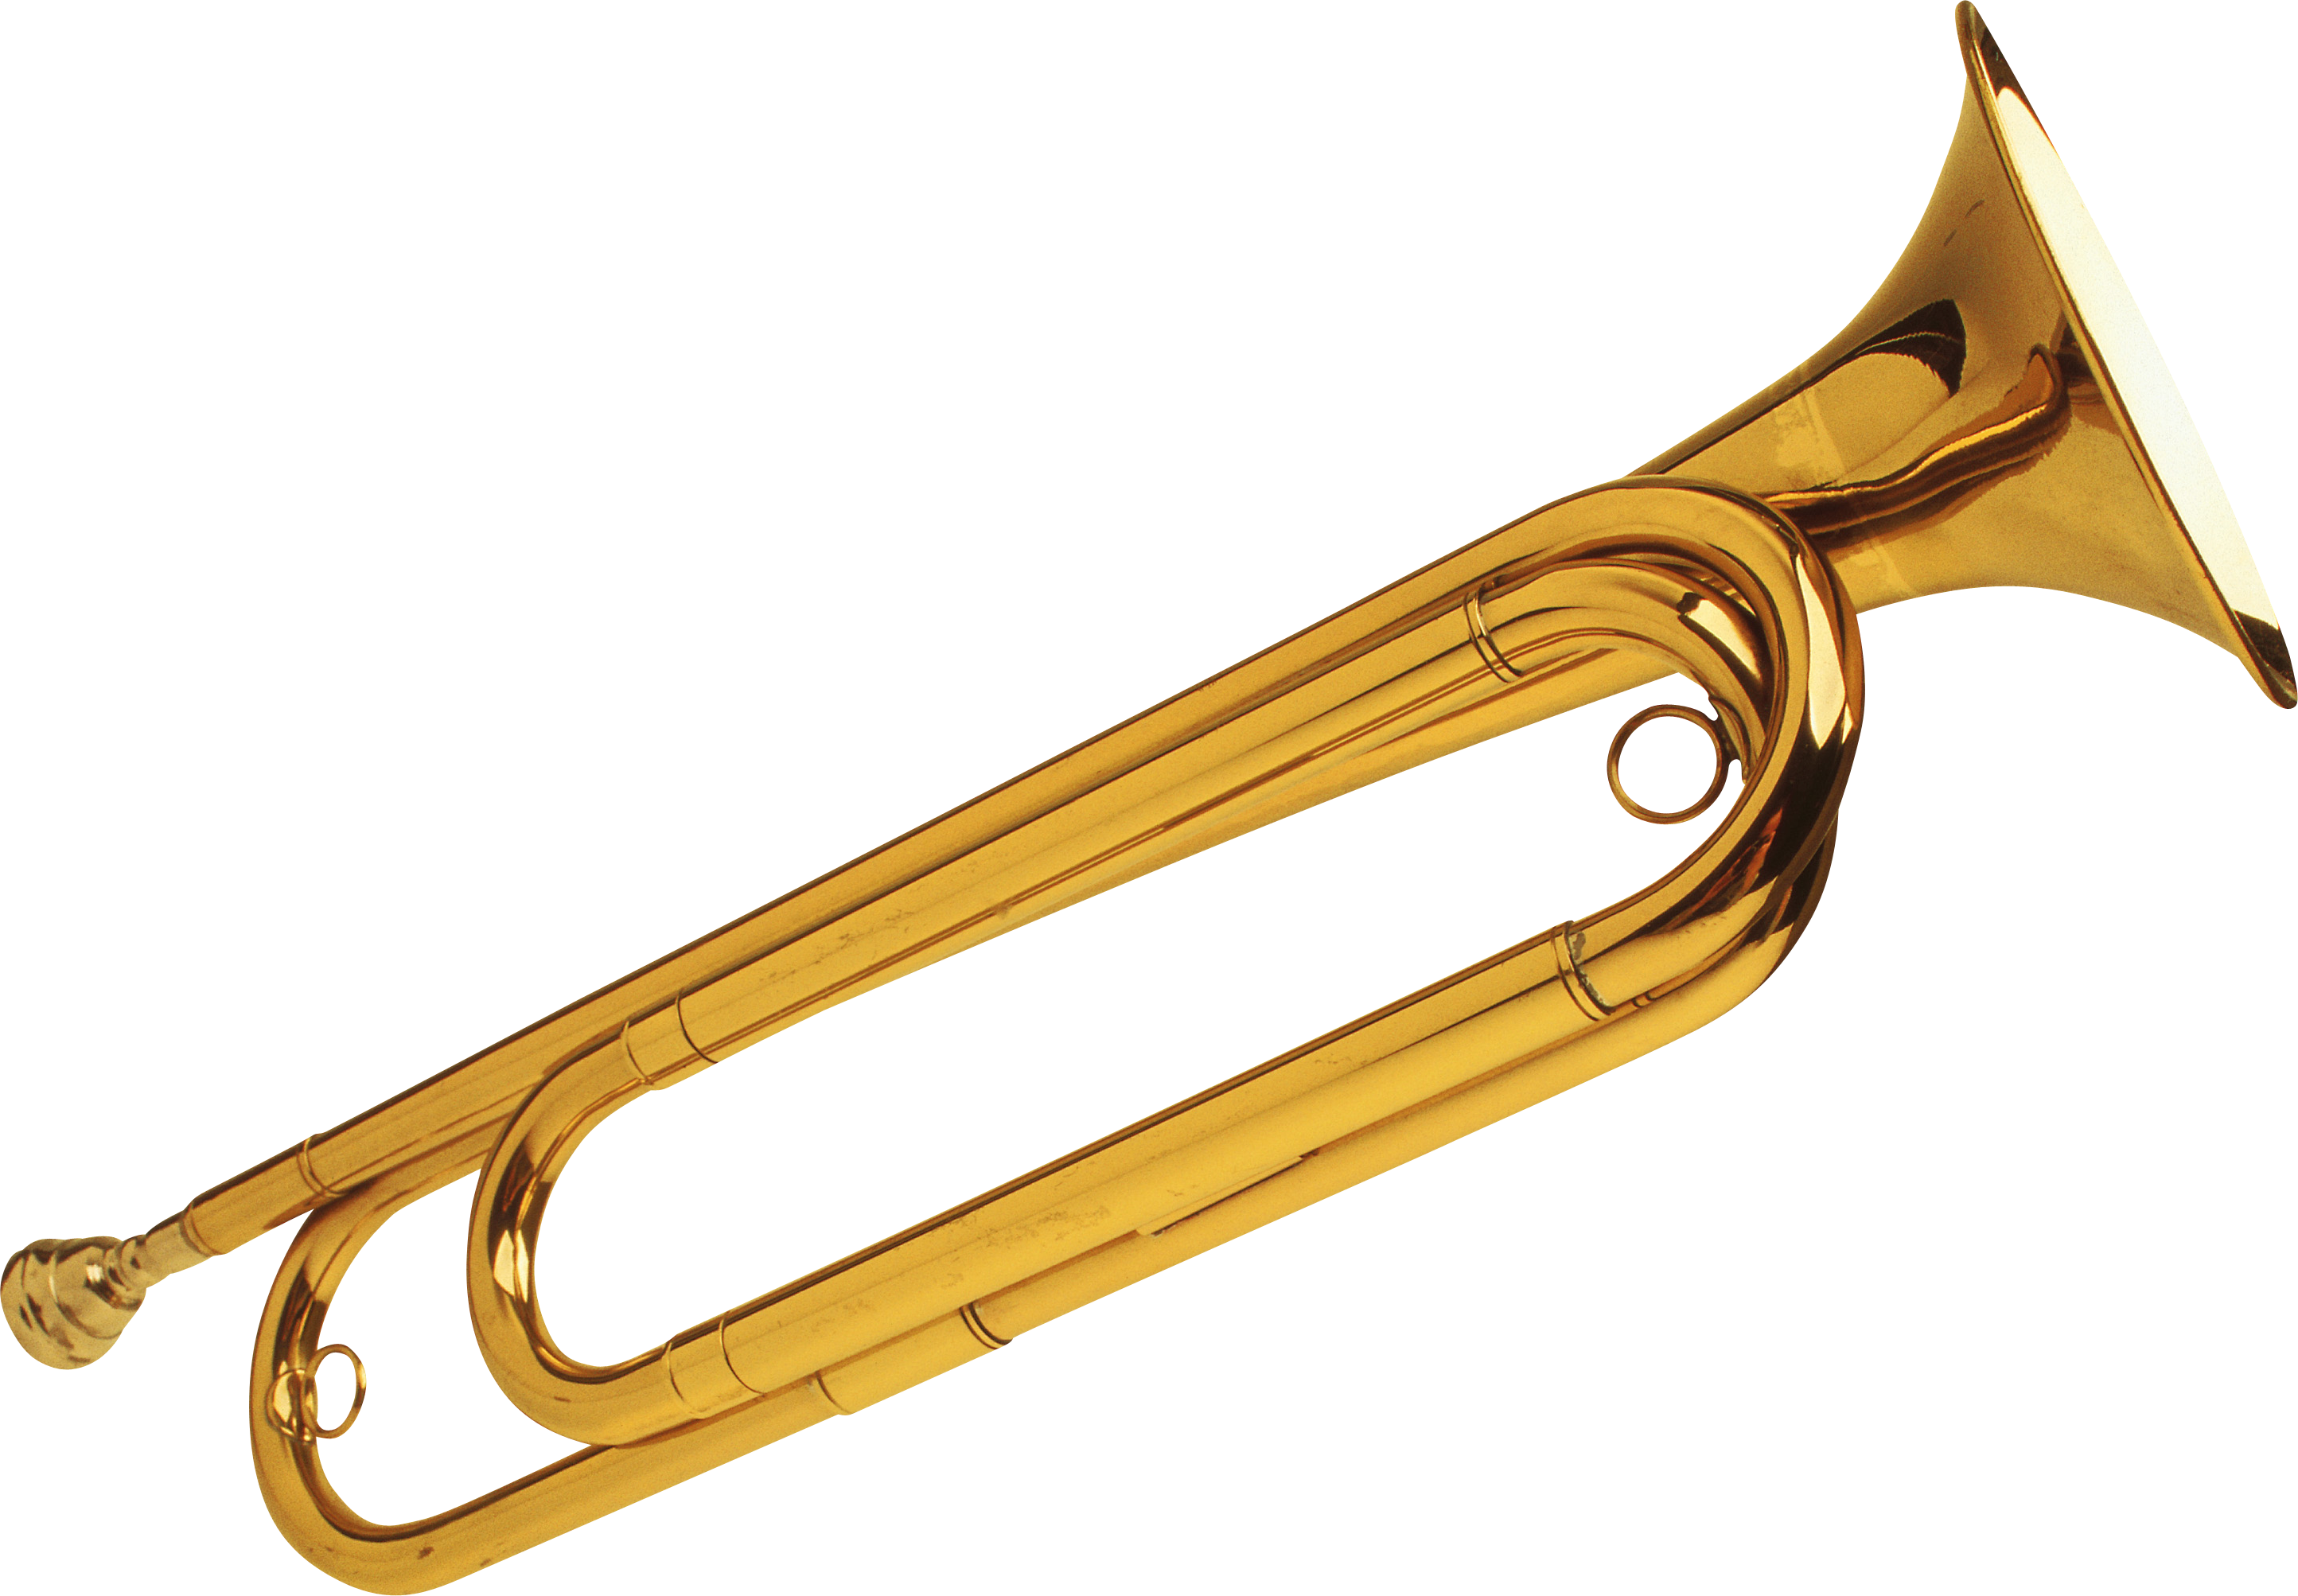 trumpet and saxophone png images available for download crazypngm crazy png images #29489